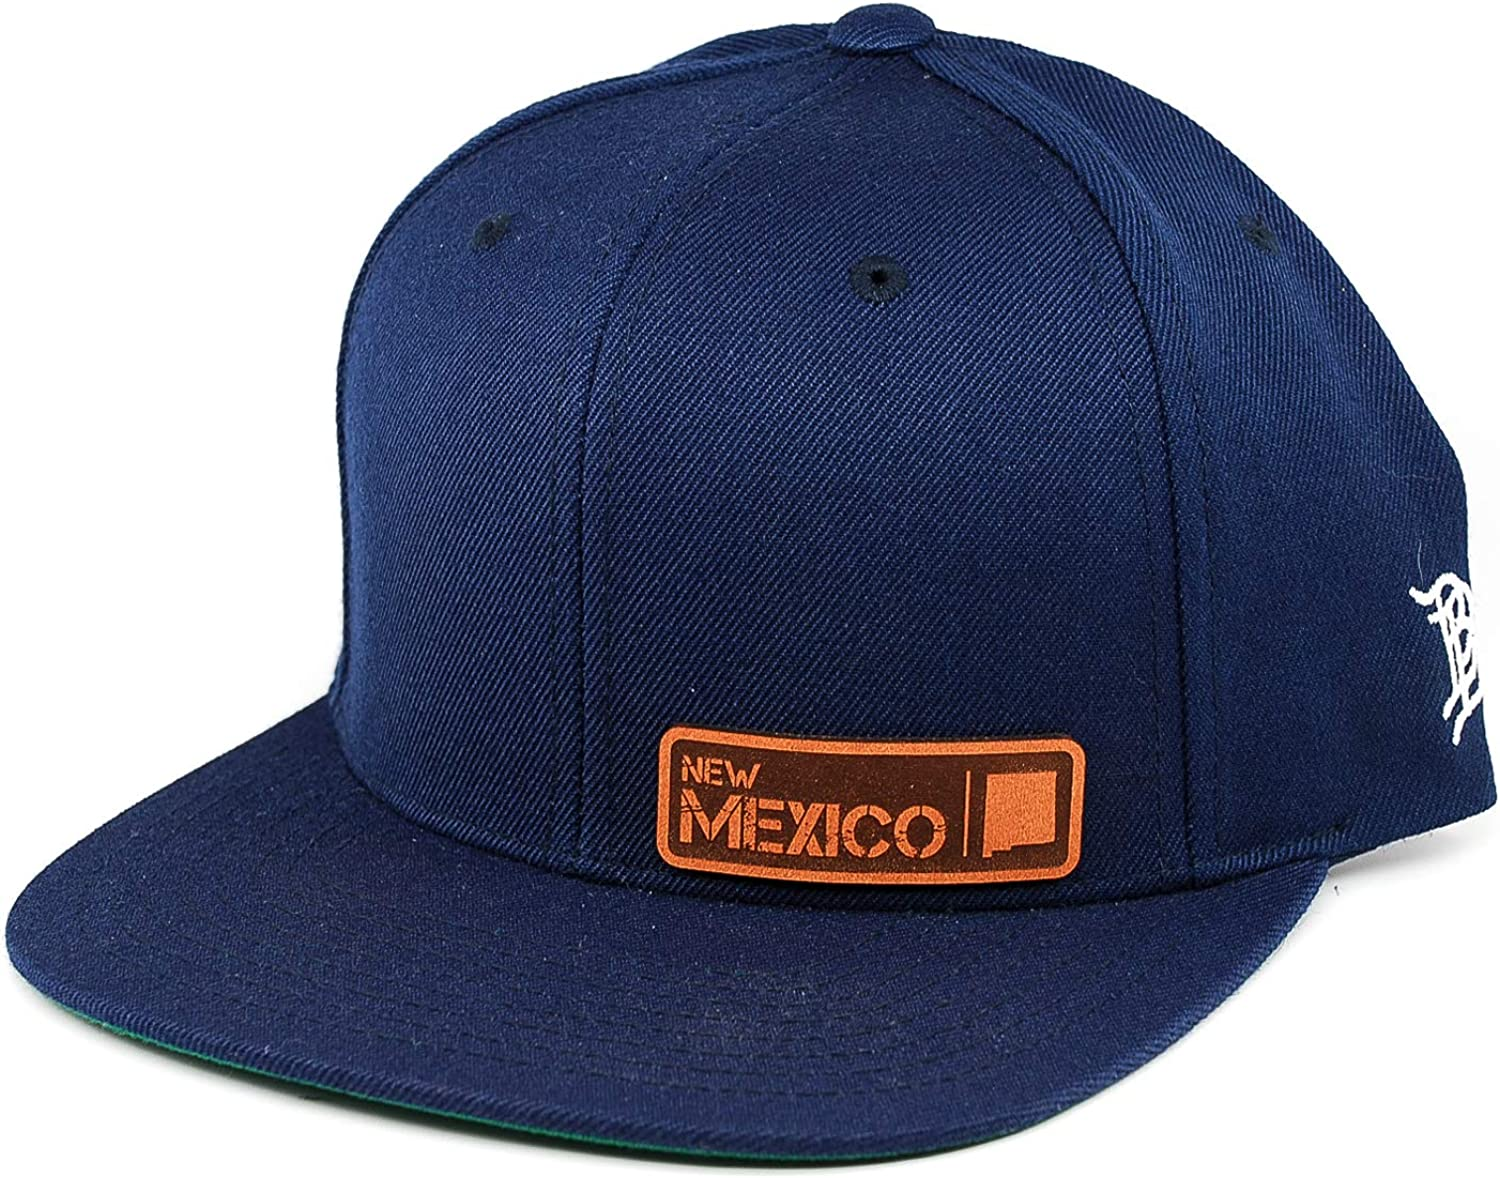 Branded Bills /'New Mexico Native Leather Patch Snapback Hat OSFA//Navy